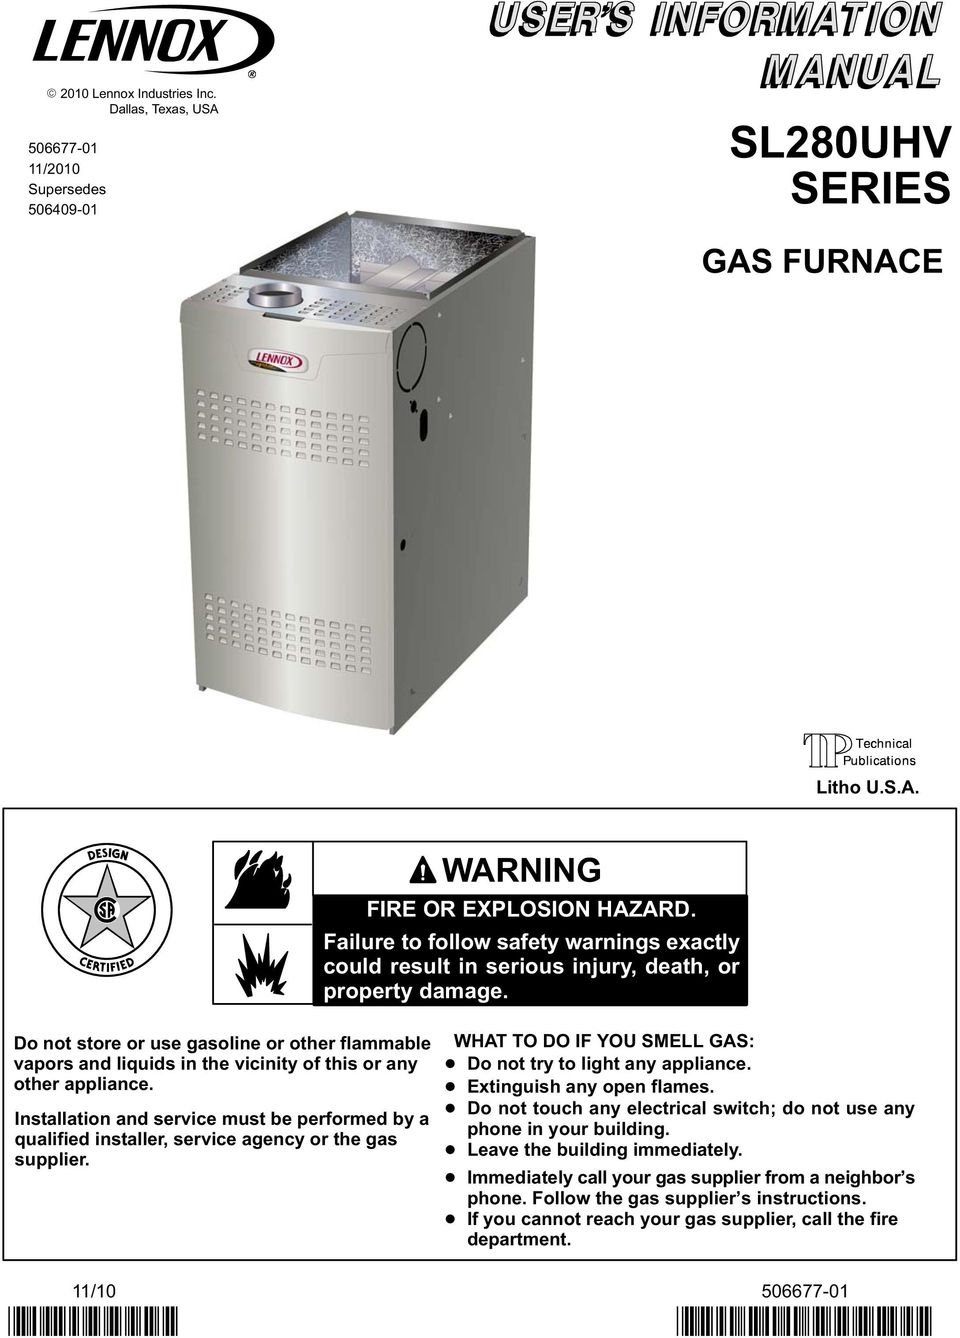 Do not store or use gasoline or other flammable vapors and liquids in the vicinity of this or any other appliance.